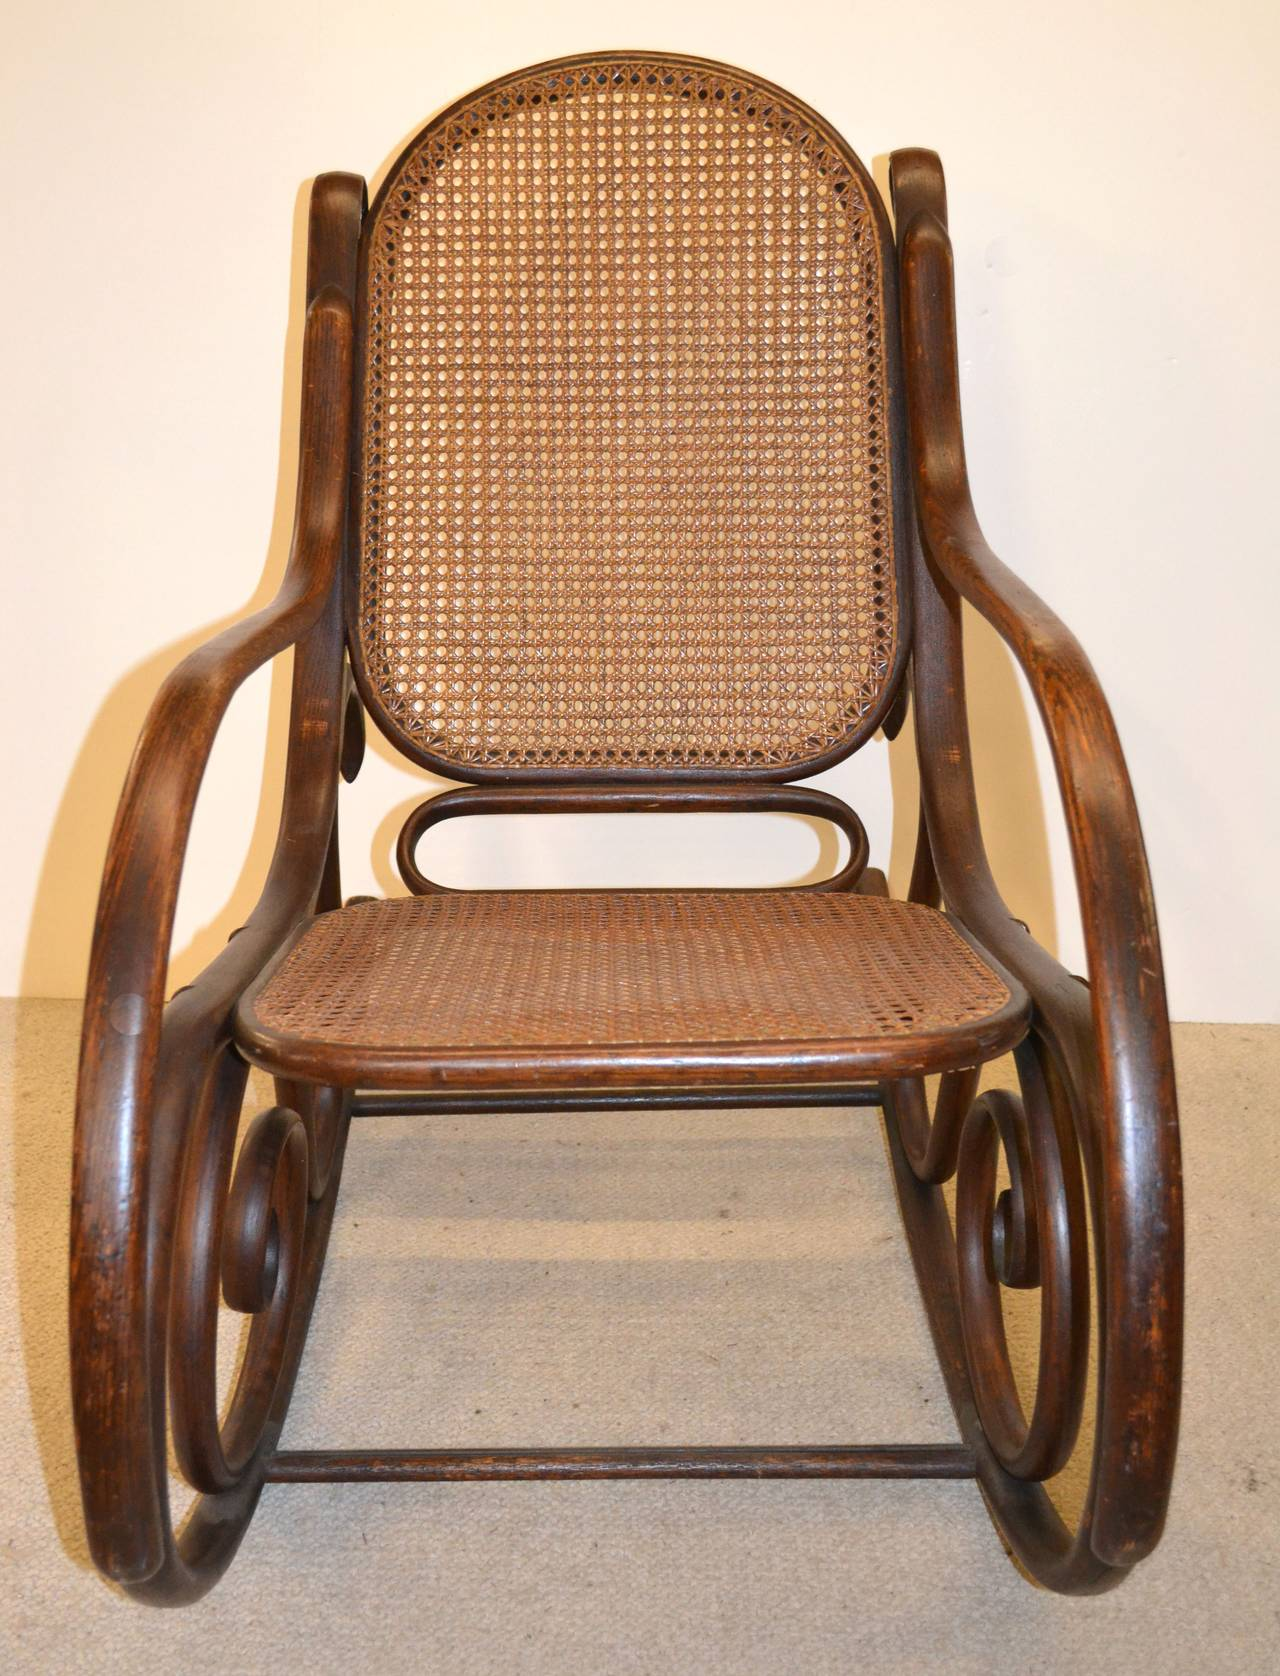 this 19th century thonet bentwood rocker chair is no longer available